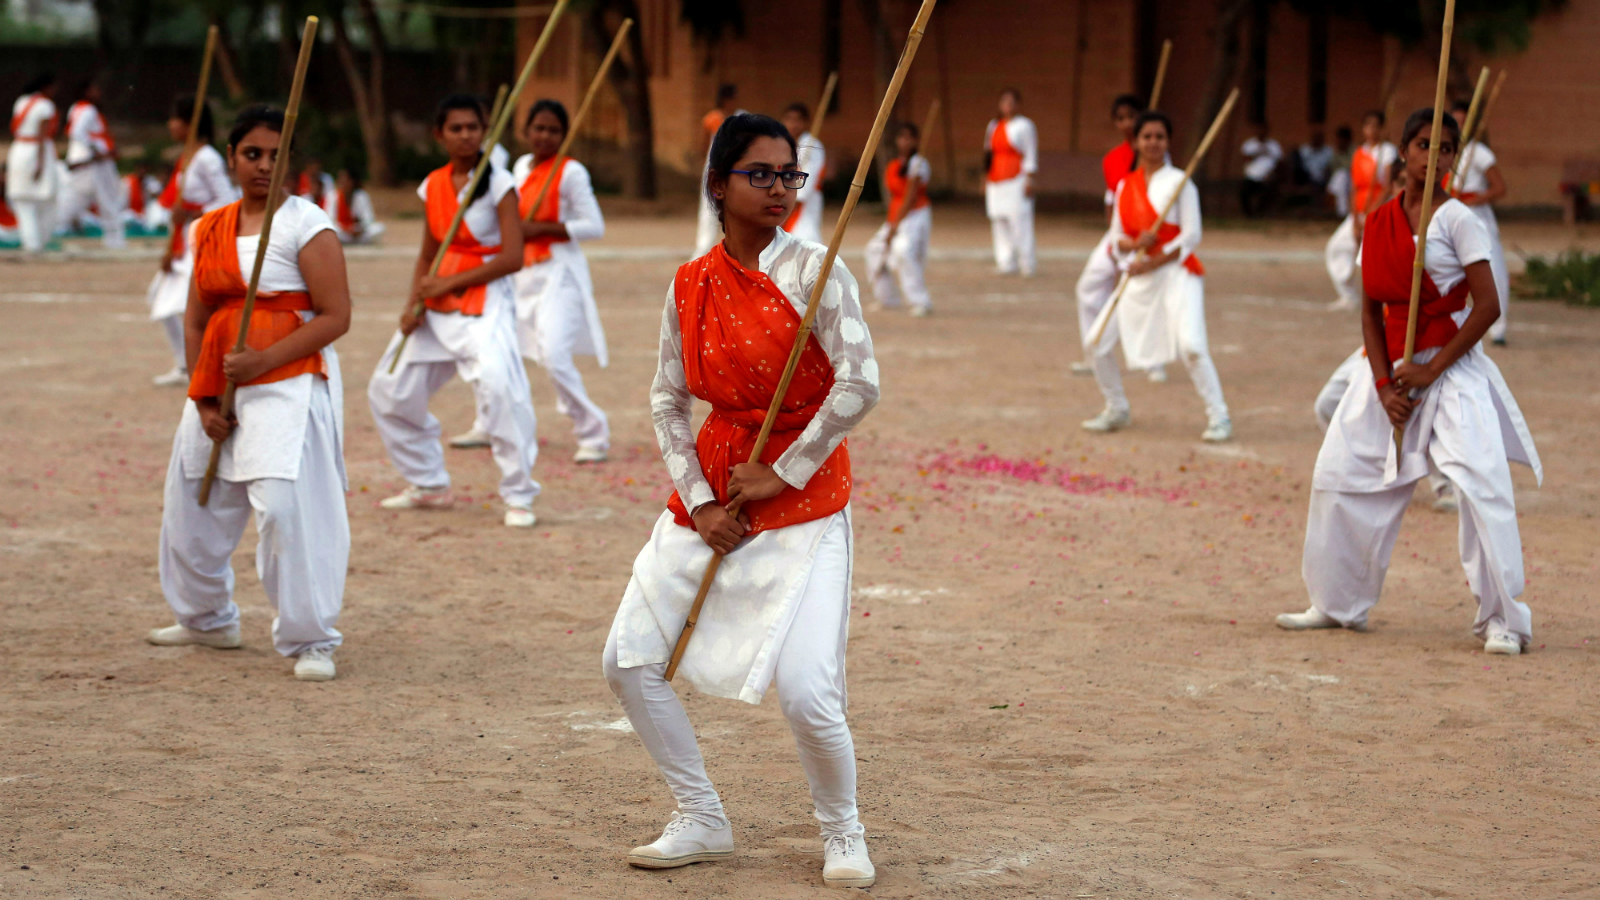 Members of Durga Vahini, the women's wing of hardline Vishwa Hindu Parishad, show their self-defence skills with sticks at the concluding ceremony of a weeklong women's training camp on the outskirts of Ahmedabad, India May 21, 2016.